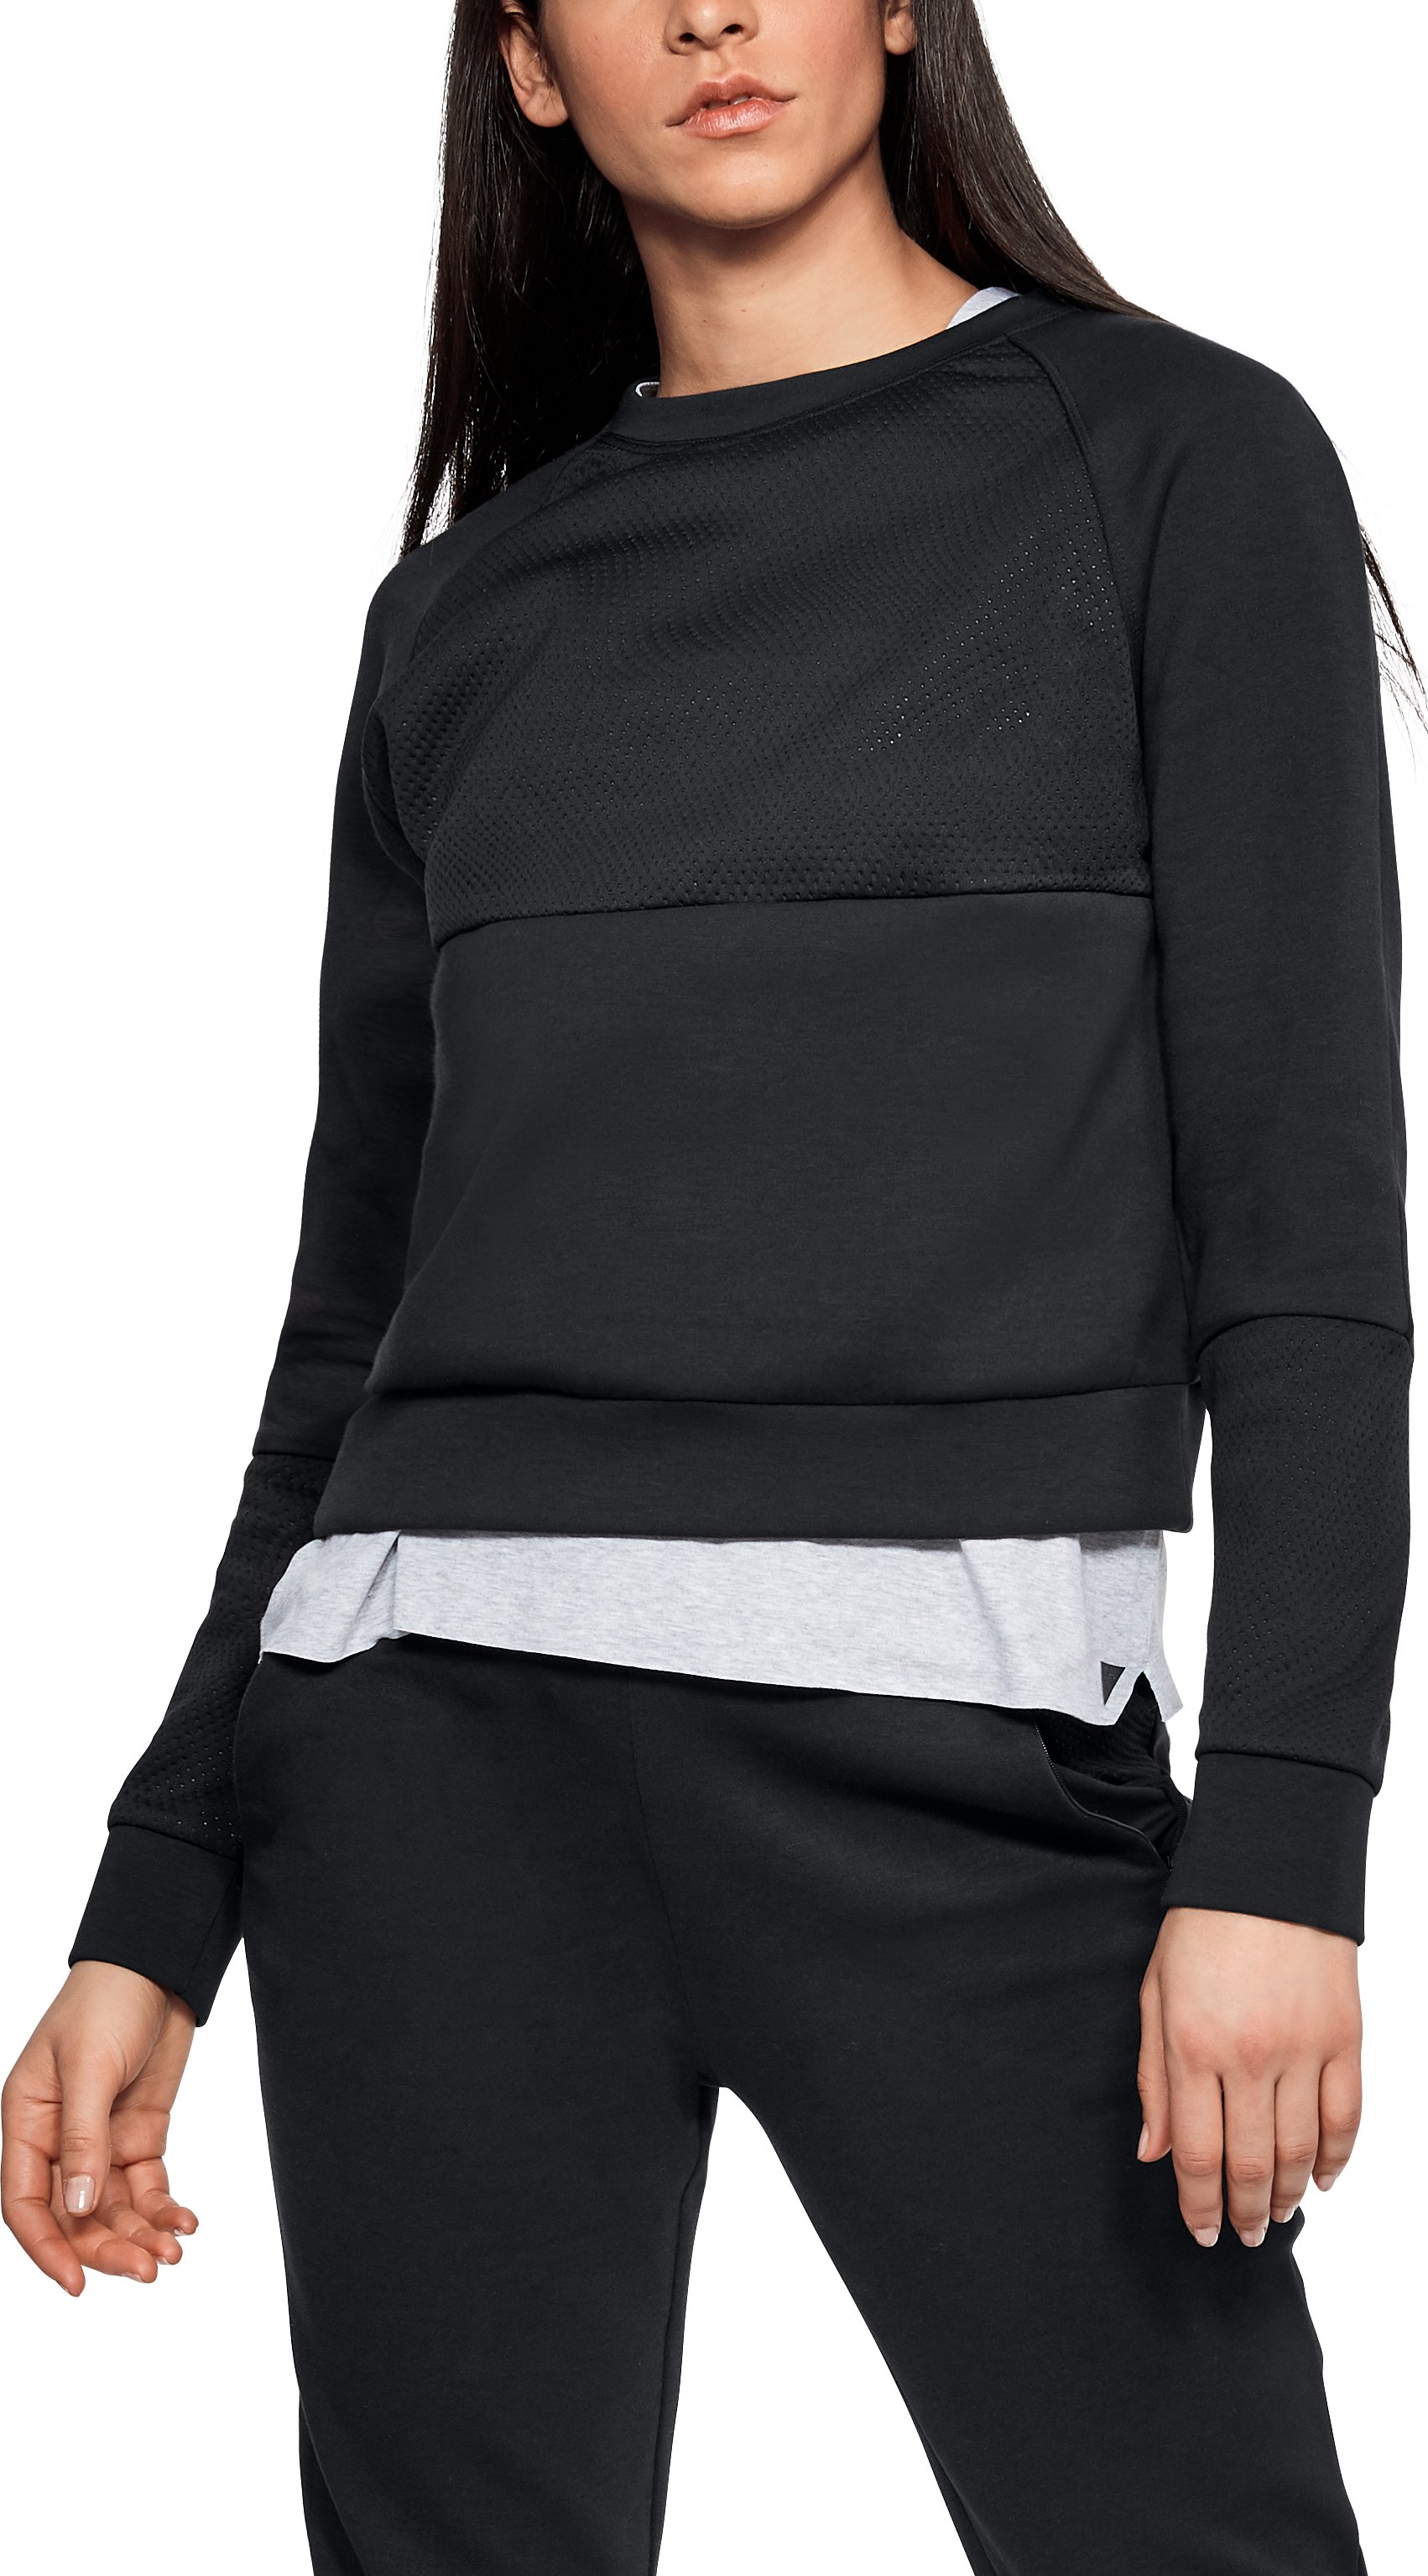 Women's UAS Shrunken Sweatshirt, Black